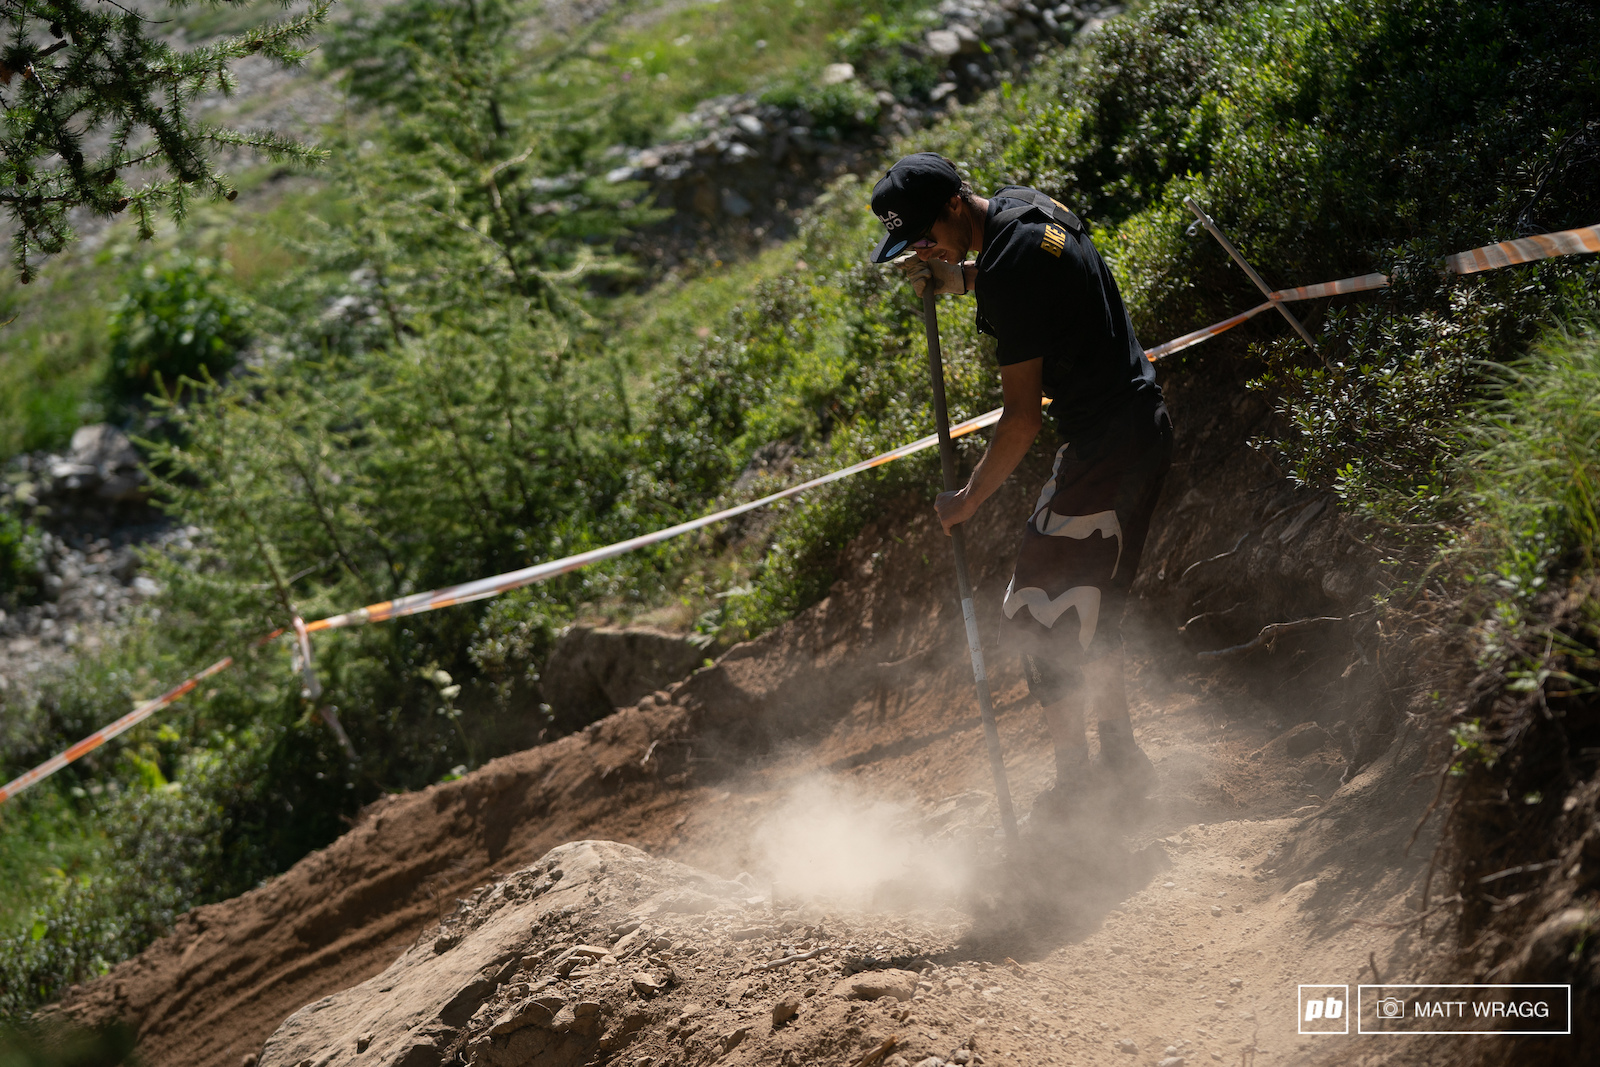 In France they call the trail builders shapeurs pronounced shay-pers . This is Damien the shapeur here in Isola making sure the track is ready for the race runs.